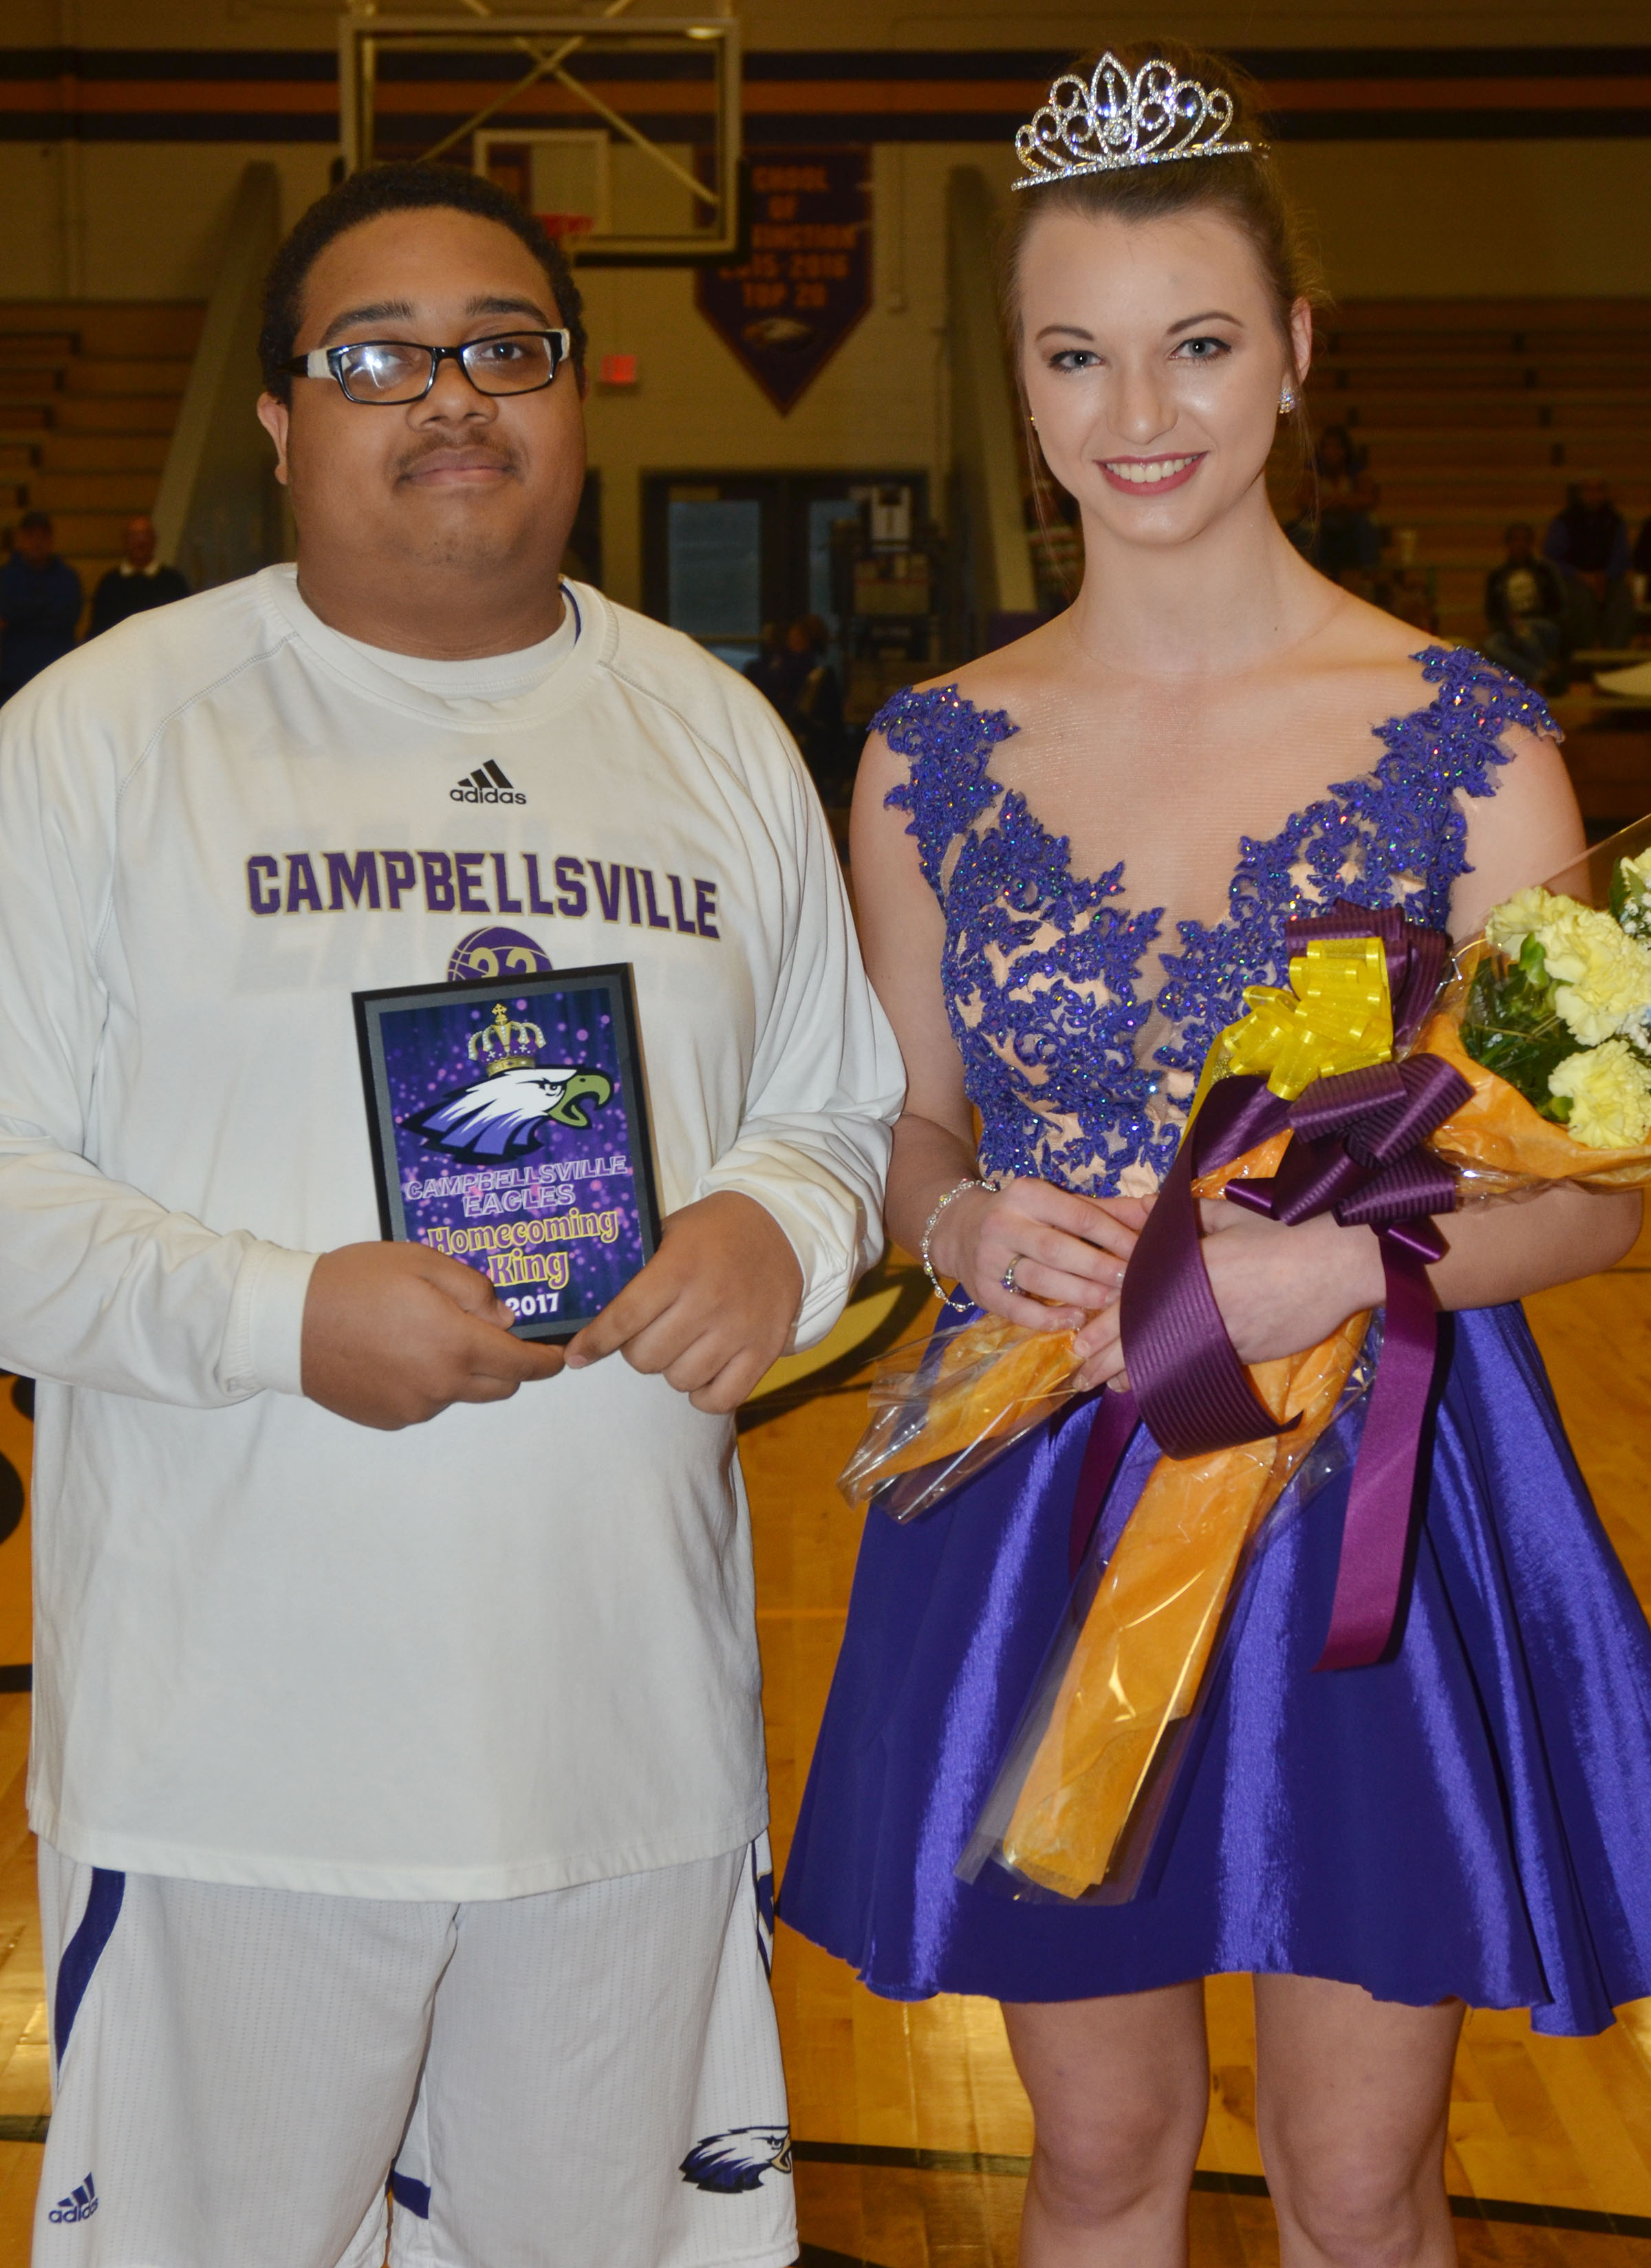 CHS seniors Ricky Smith-Cecil and Caylie Blair were named this year's basketball homecoming king and queen.